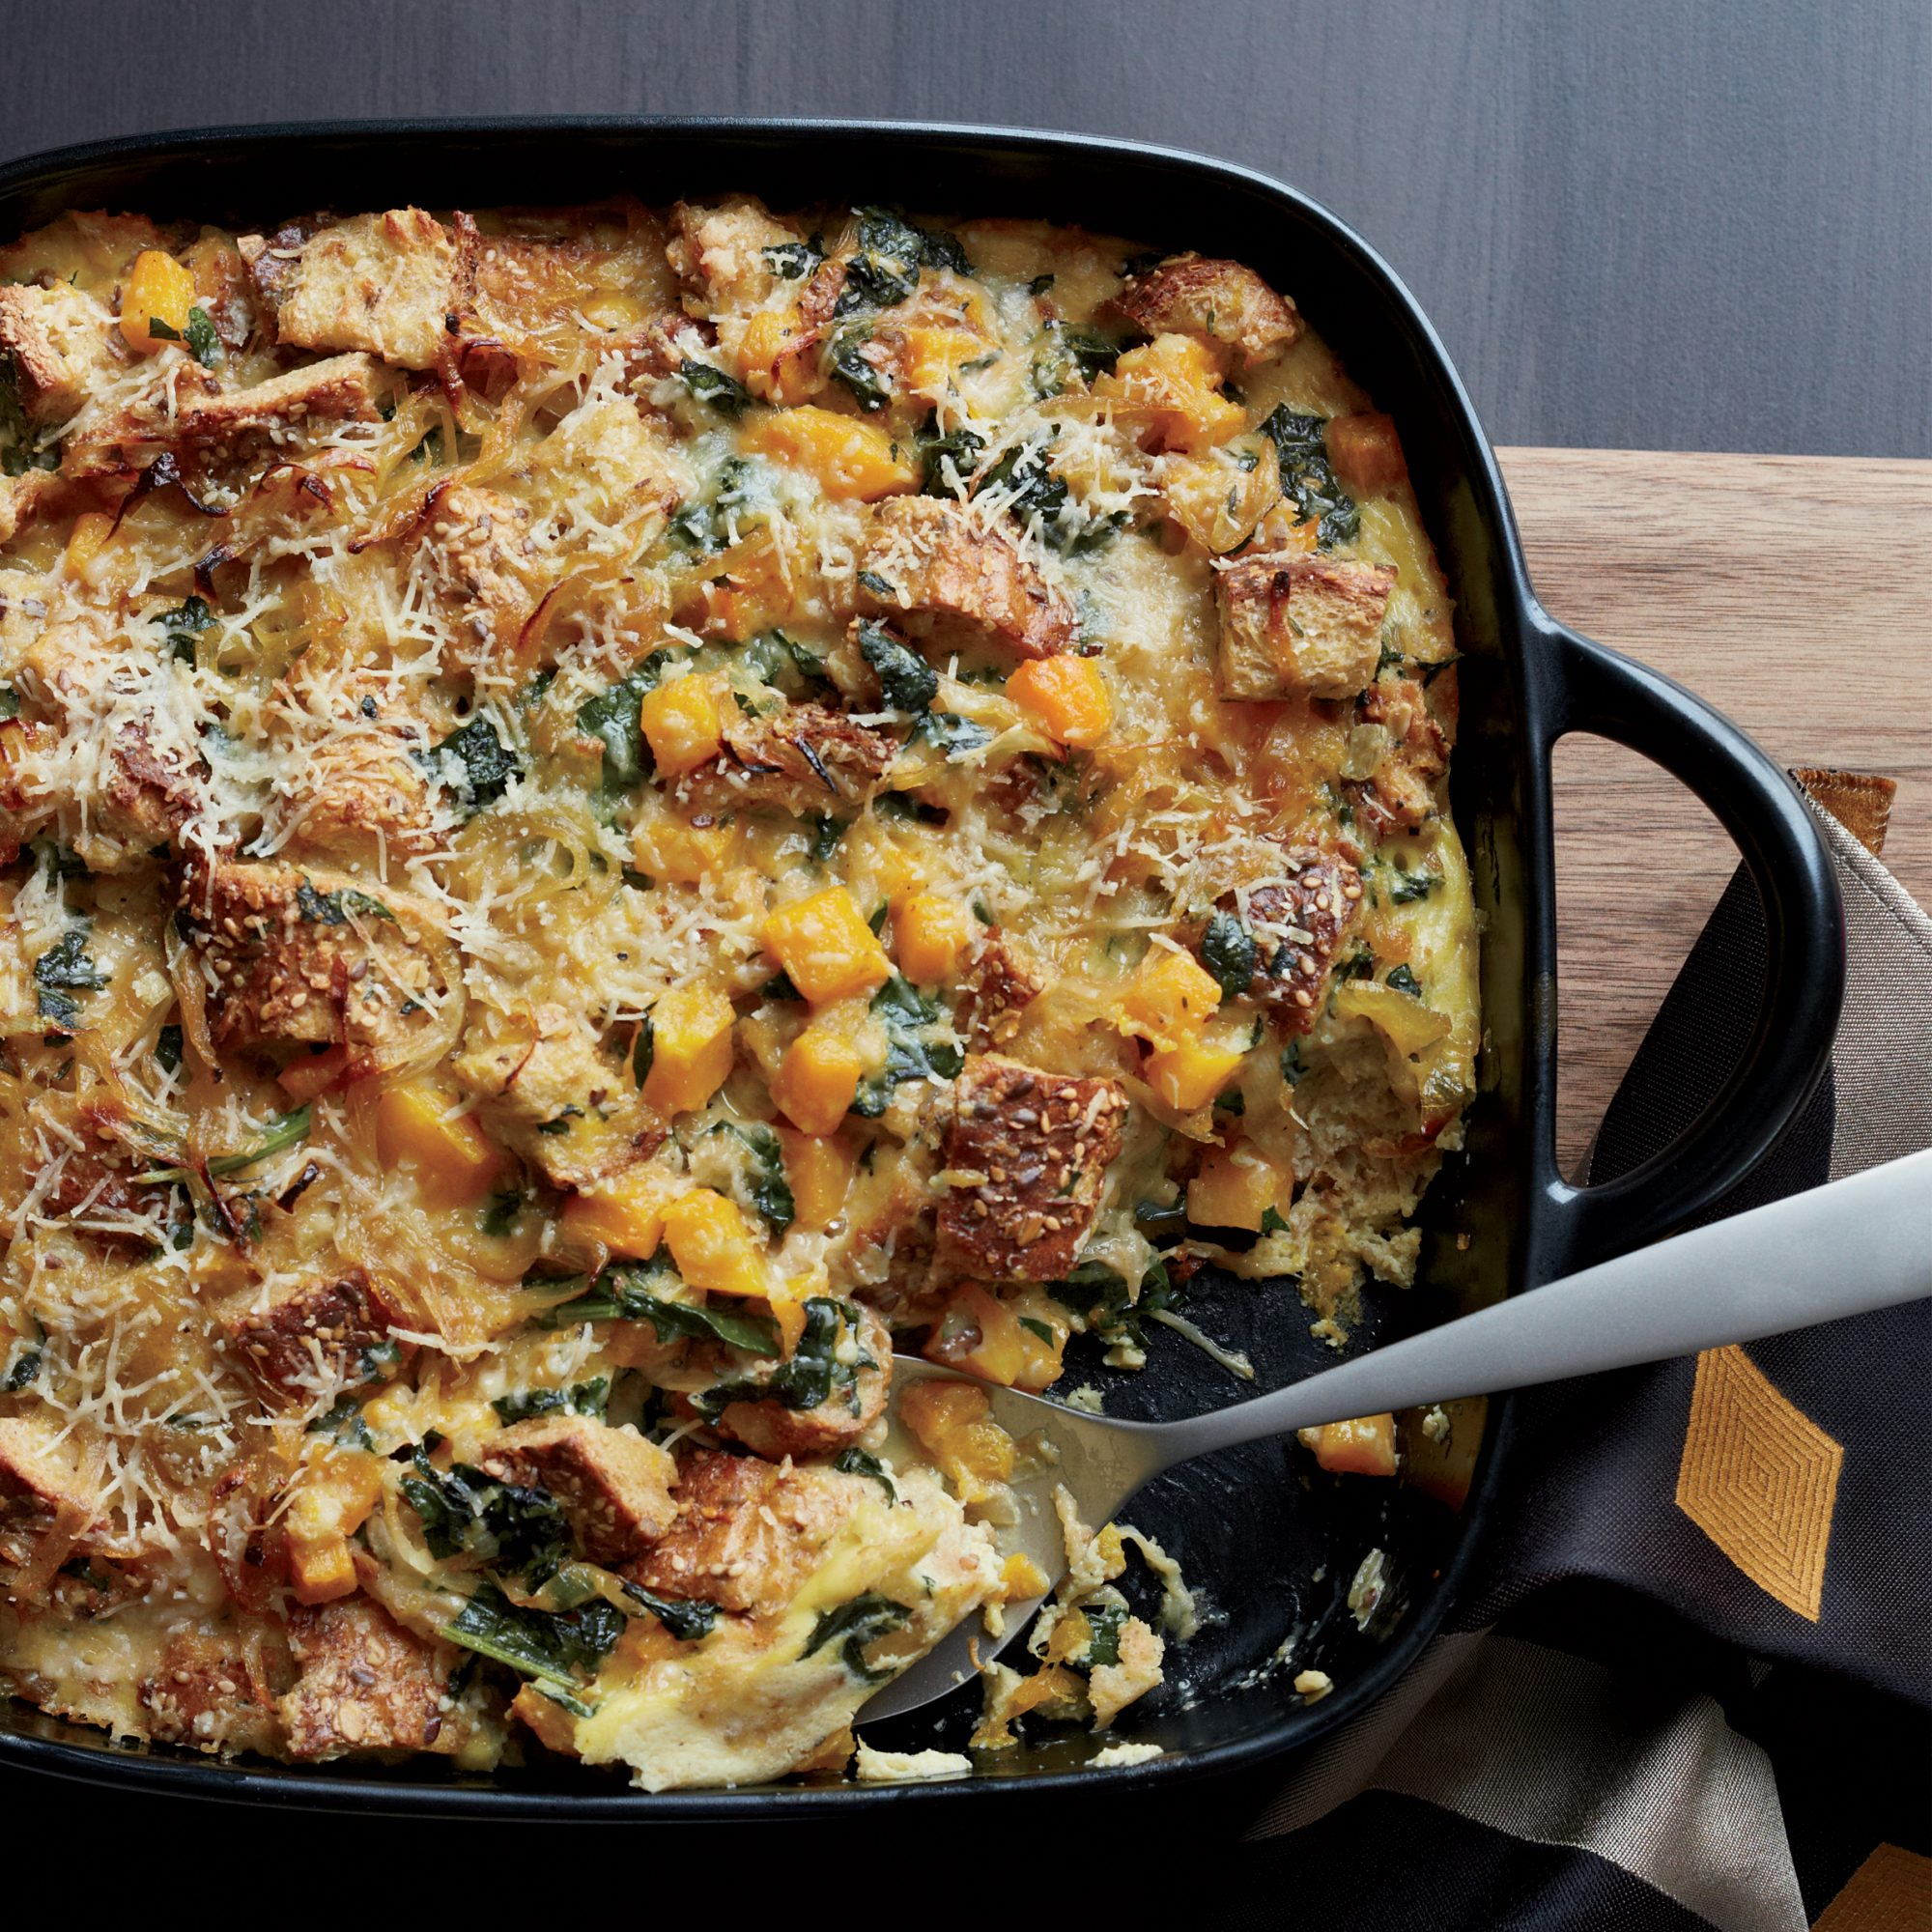 original-201302-r-butternut-squash-and-kale-strata-with-multigrain-bread.jpg